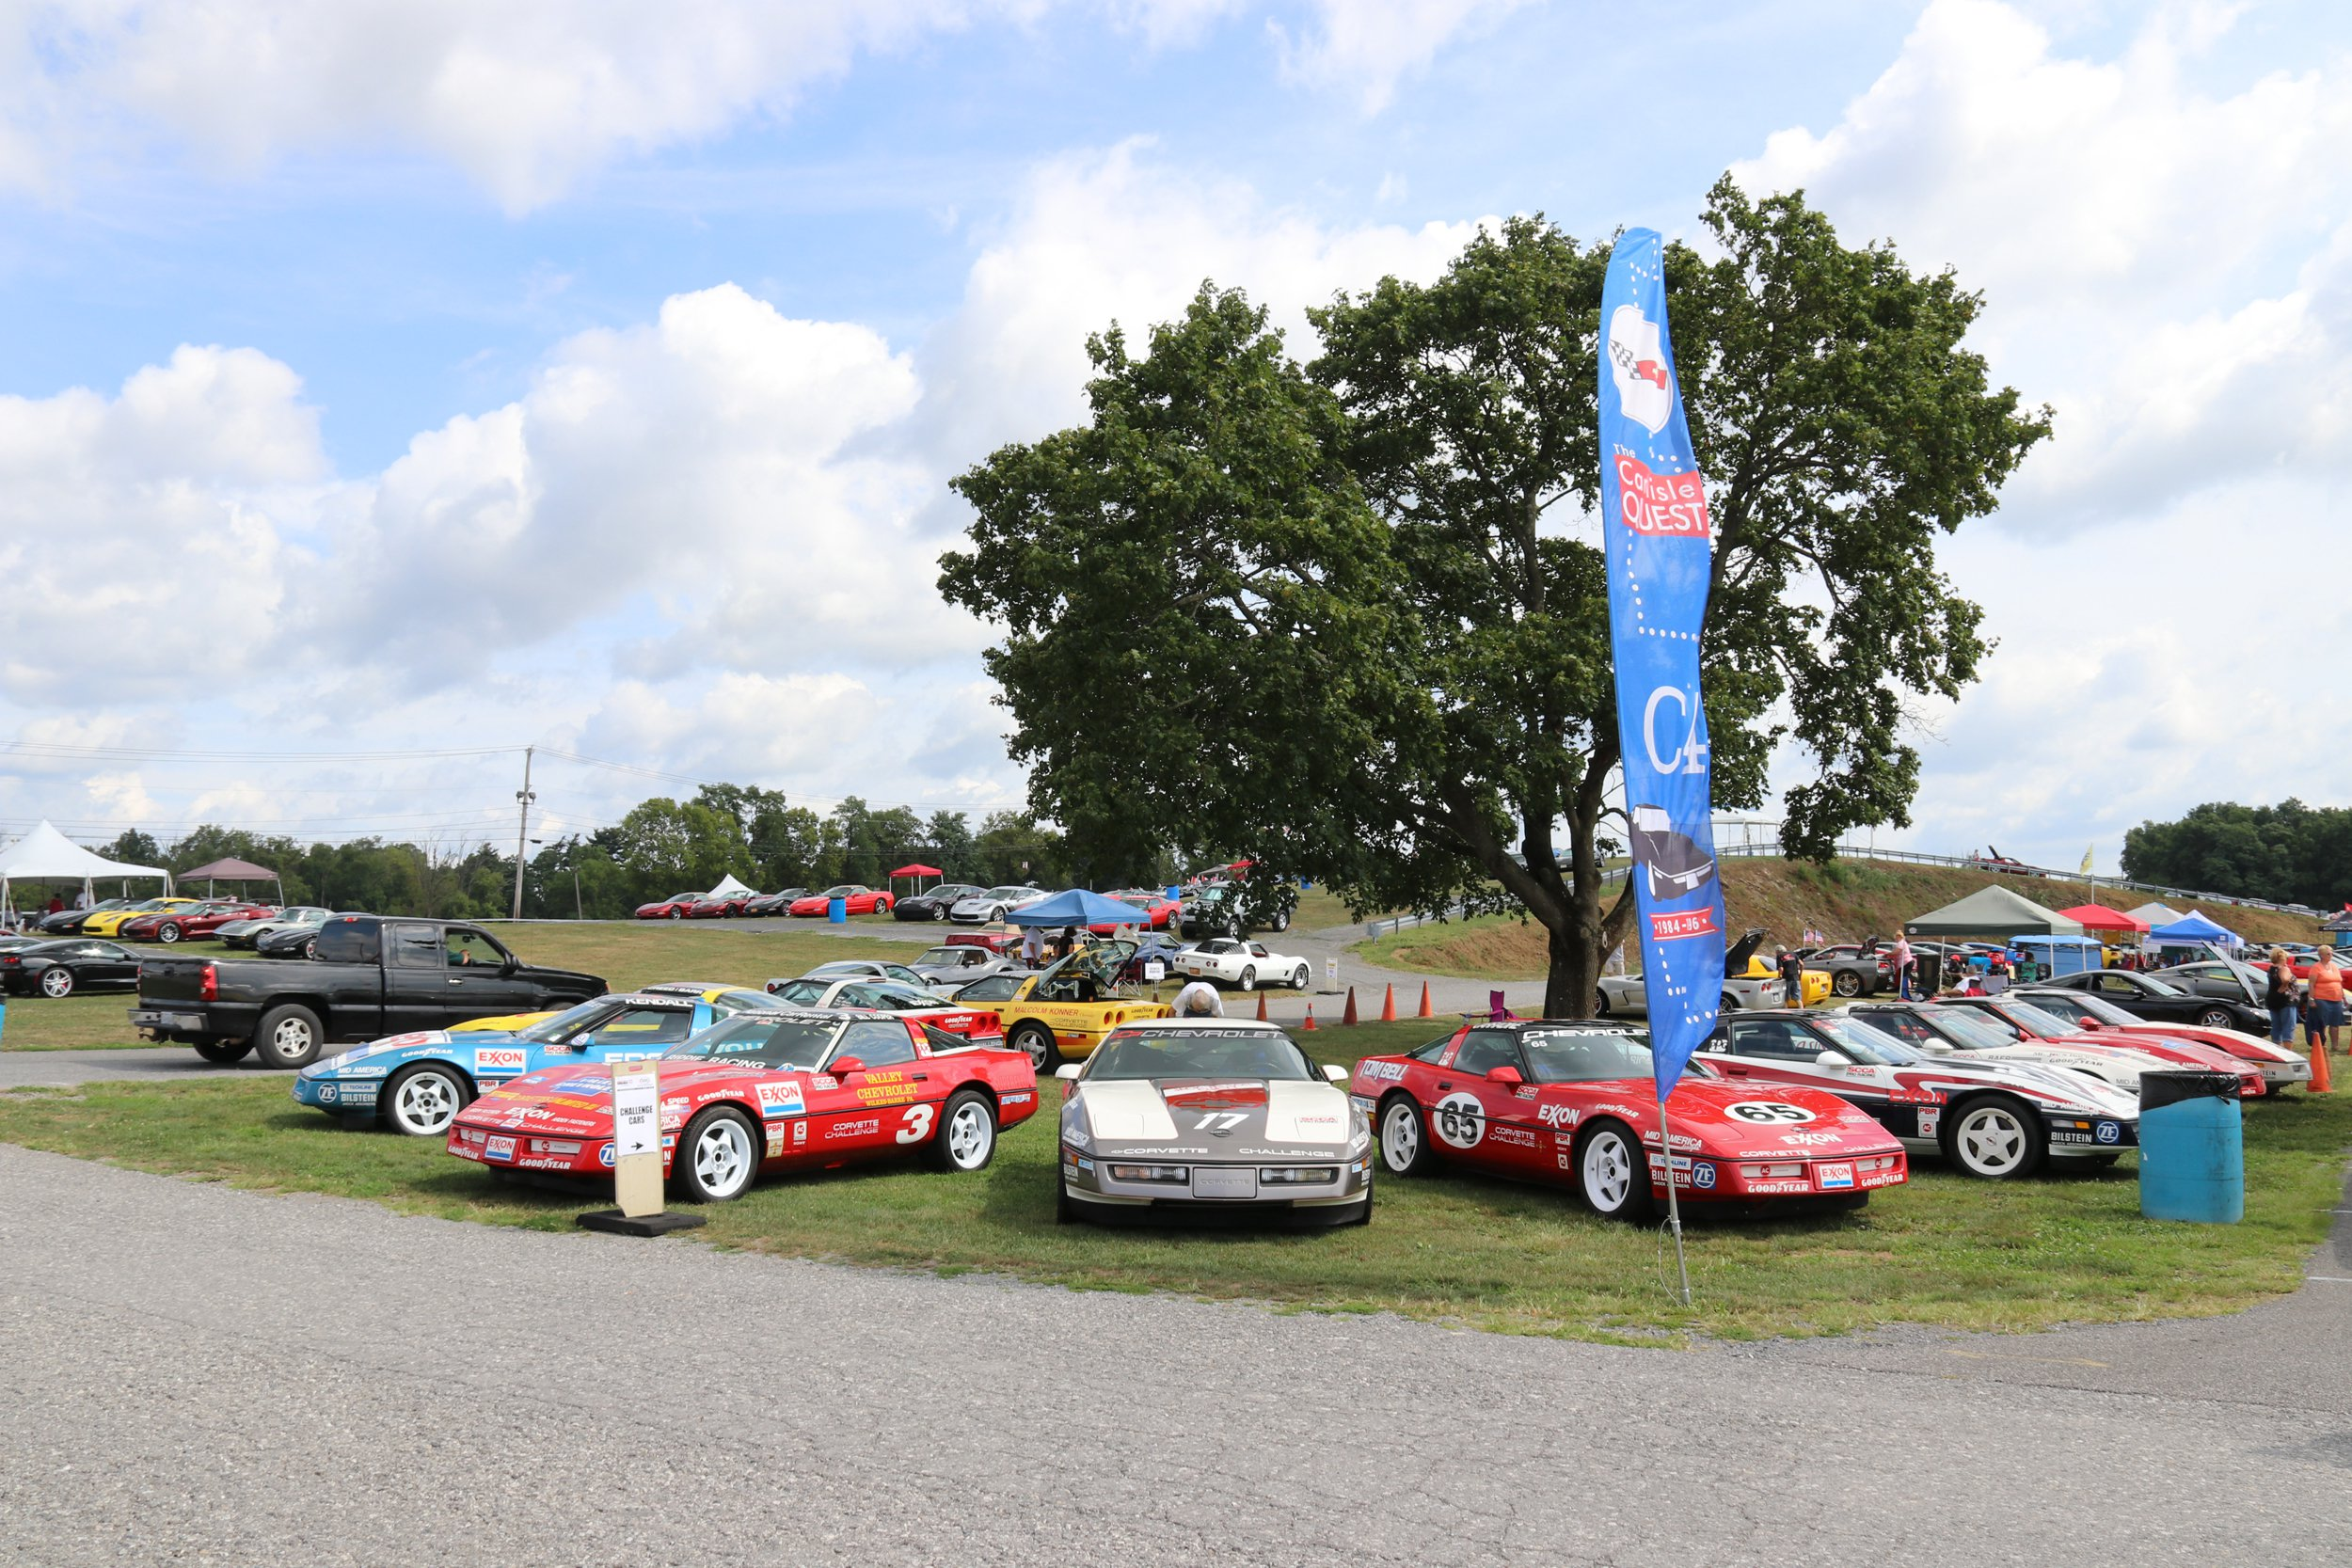 corvettes-at-carlisle-2019-one-for-the-record-books-2019-08-28_20-26-59_143571.jpg